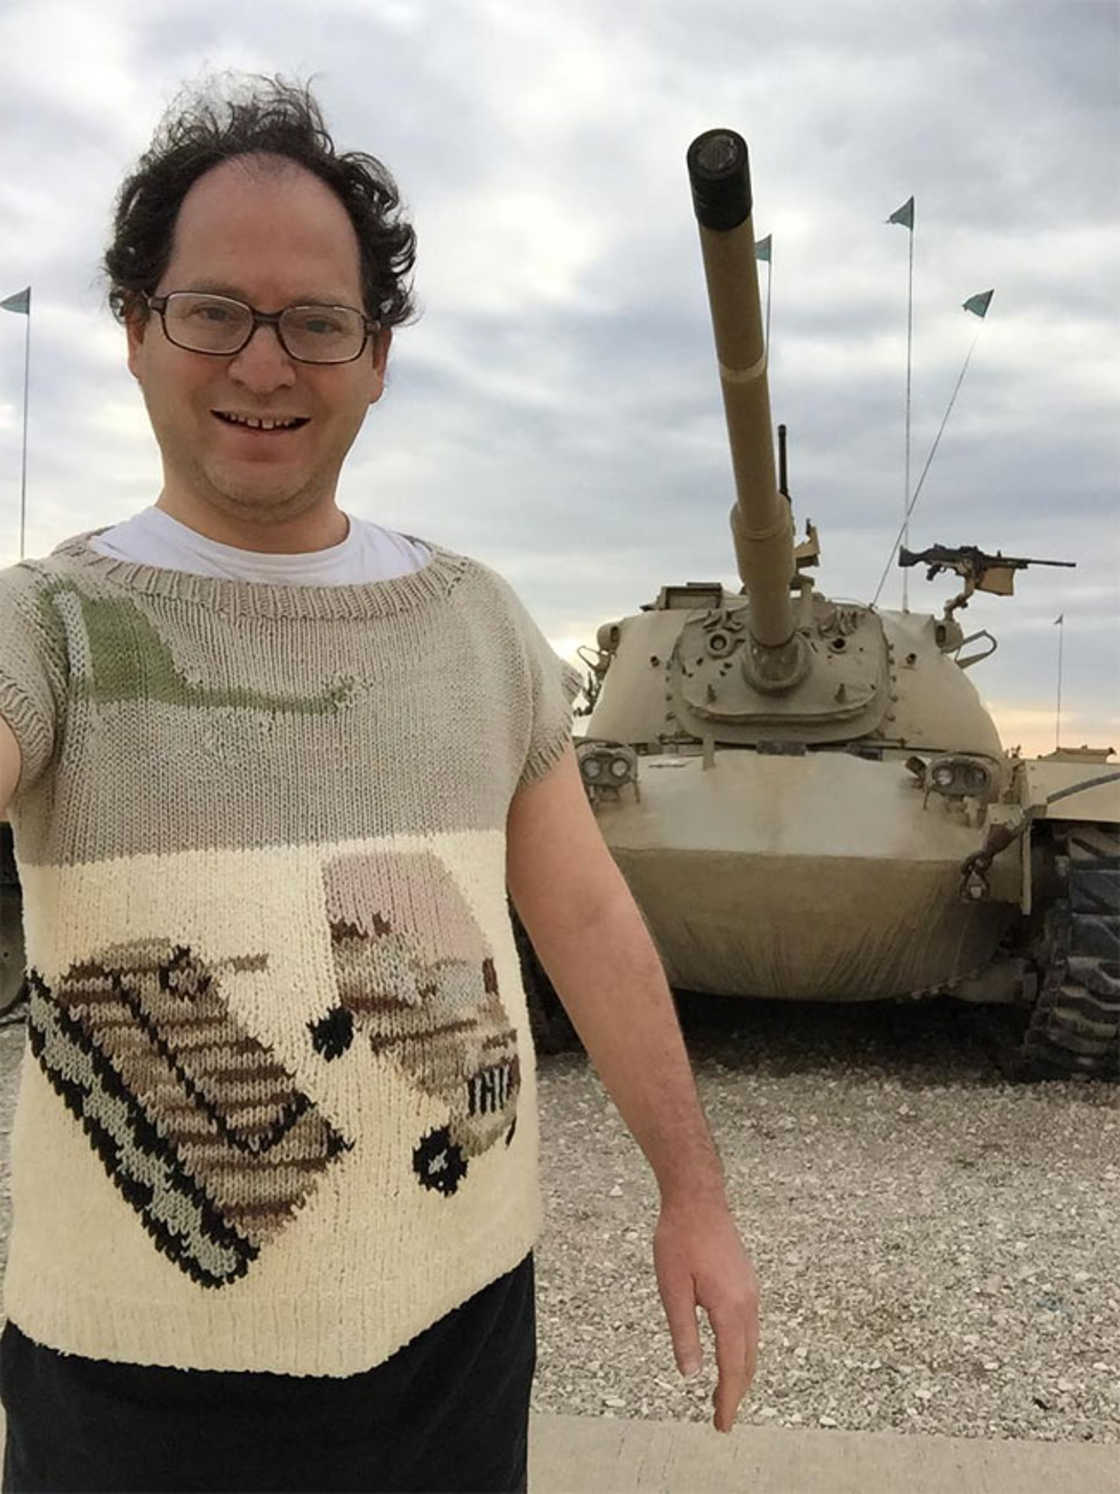 He knits sweaters of the places he visits to take a picture wearing it